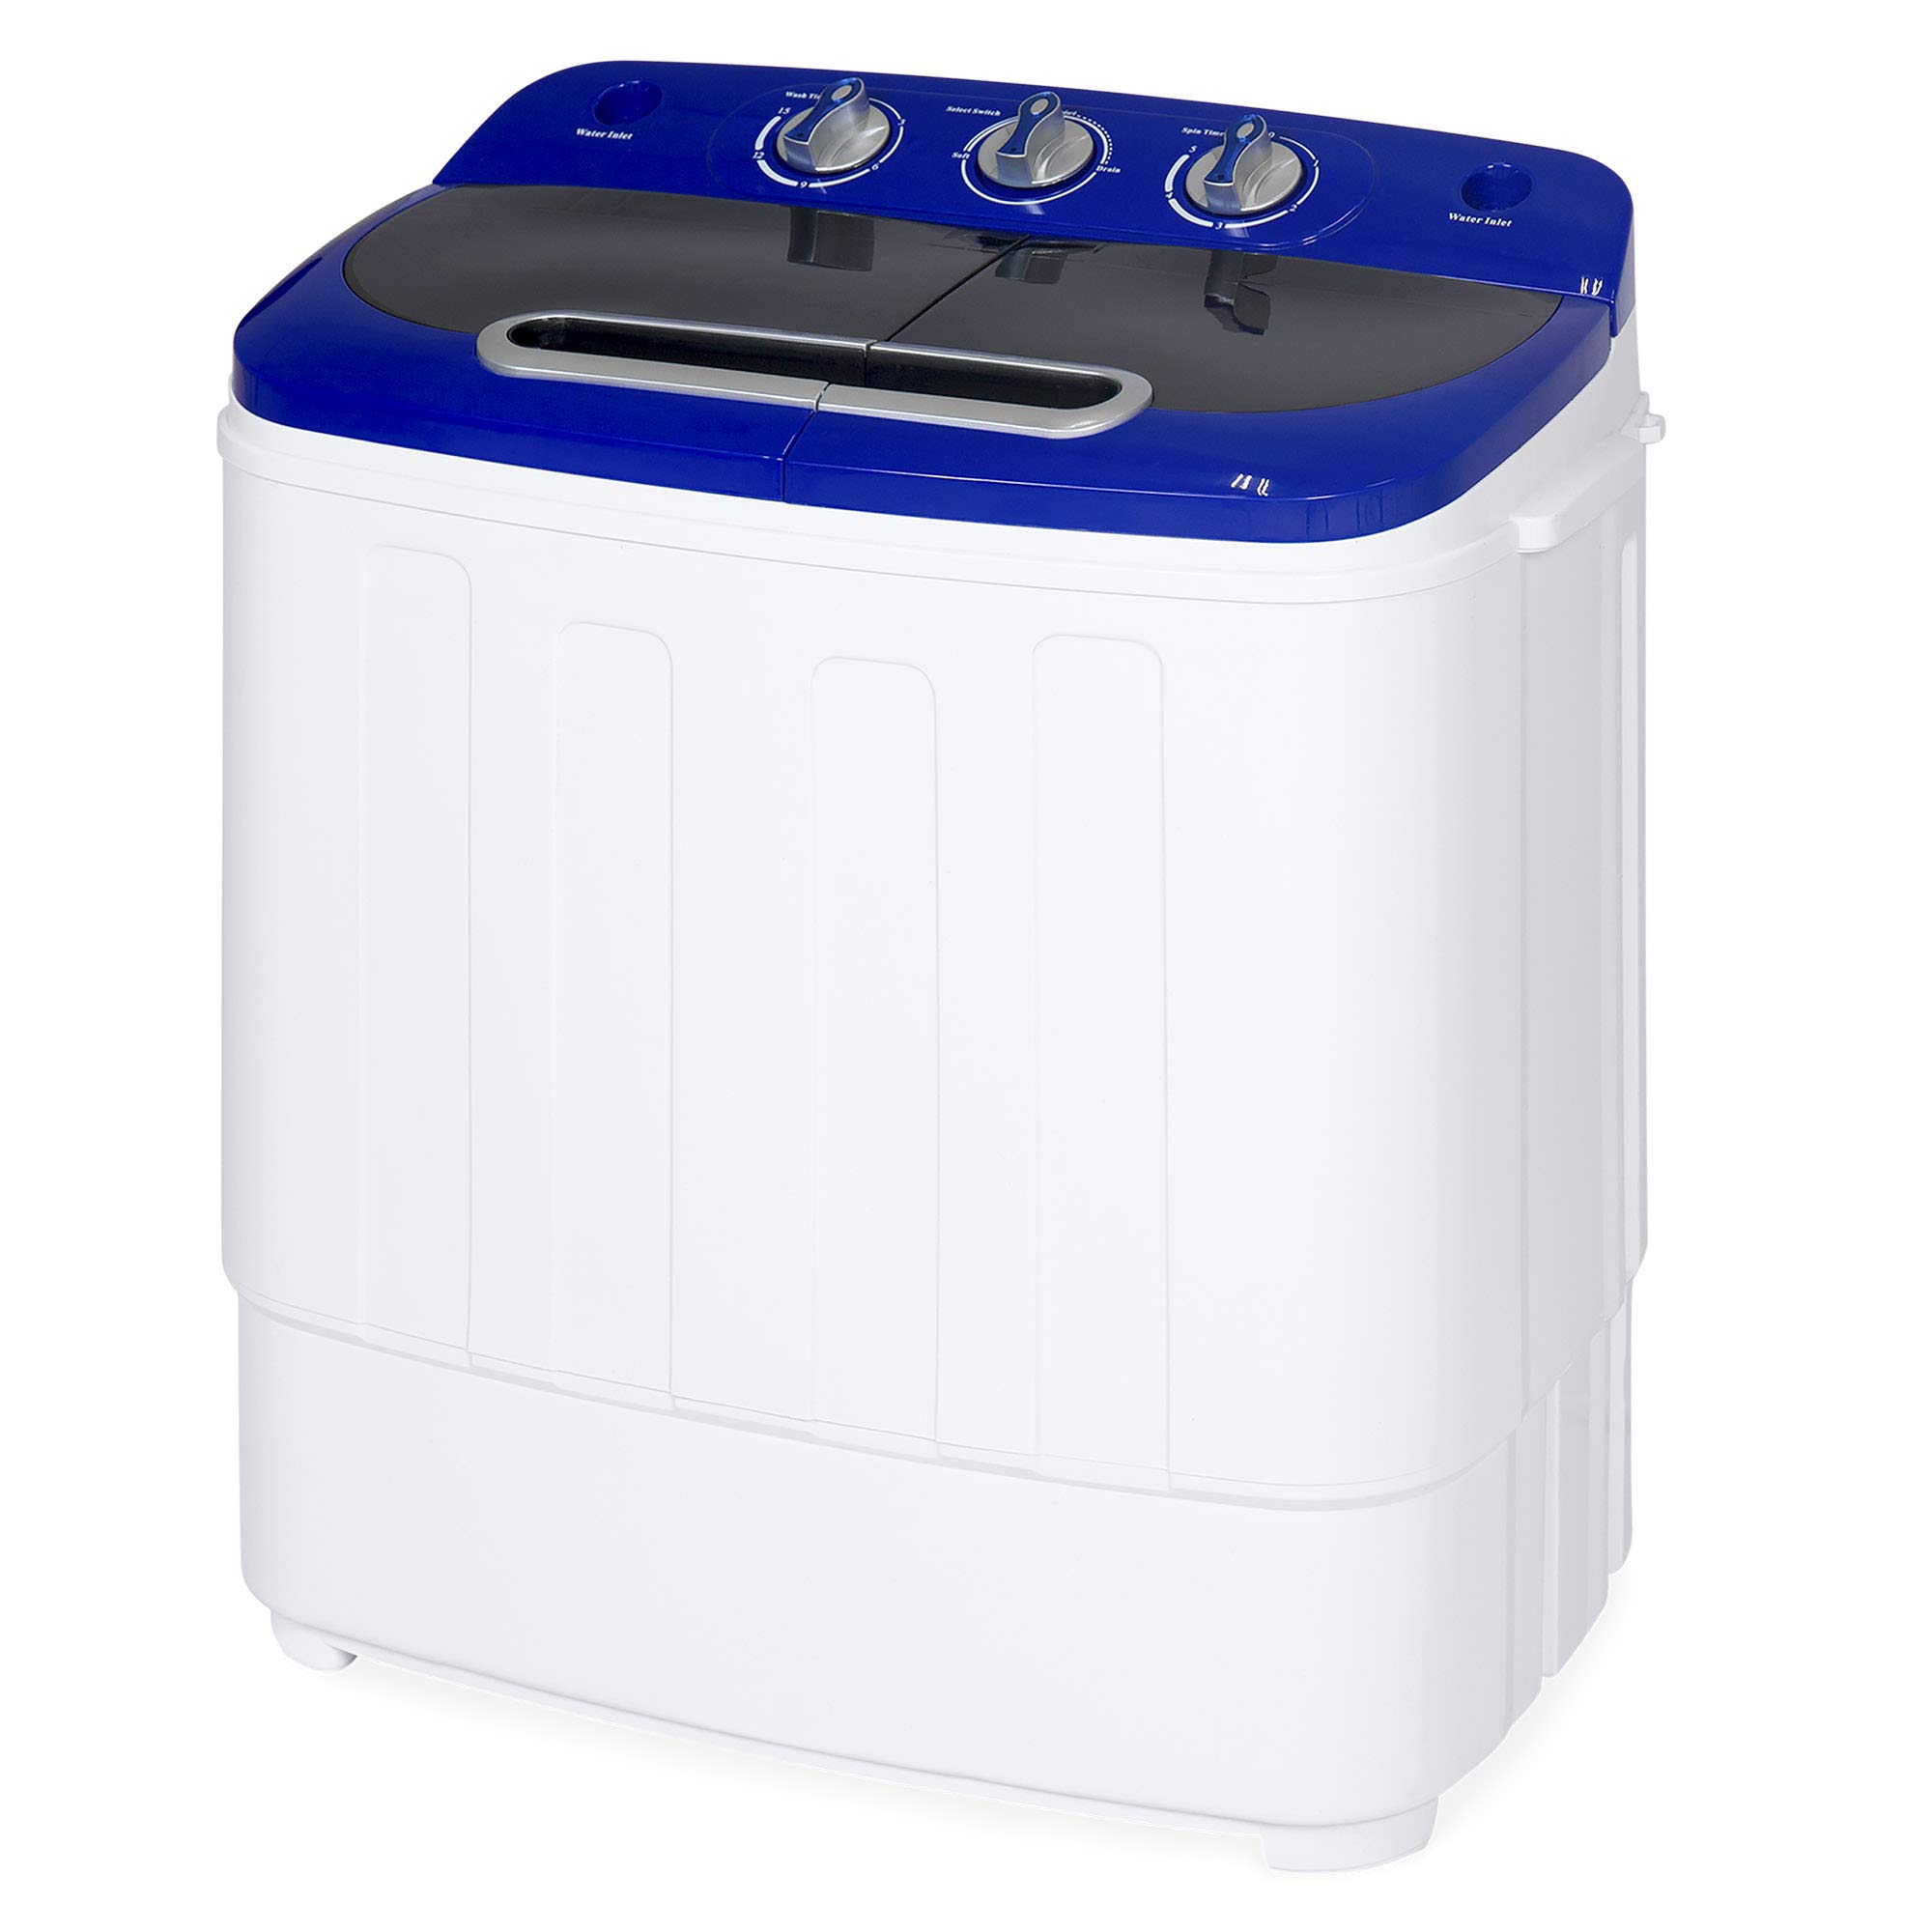 Best Choice Products Portable Compact Twin Tub Laundry Machine & Spin Cycle w/Hose, 13lbs Capacity - White/Blue by Best Choice Products